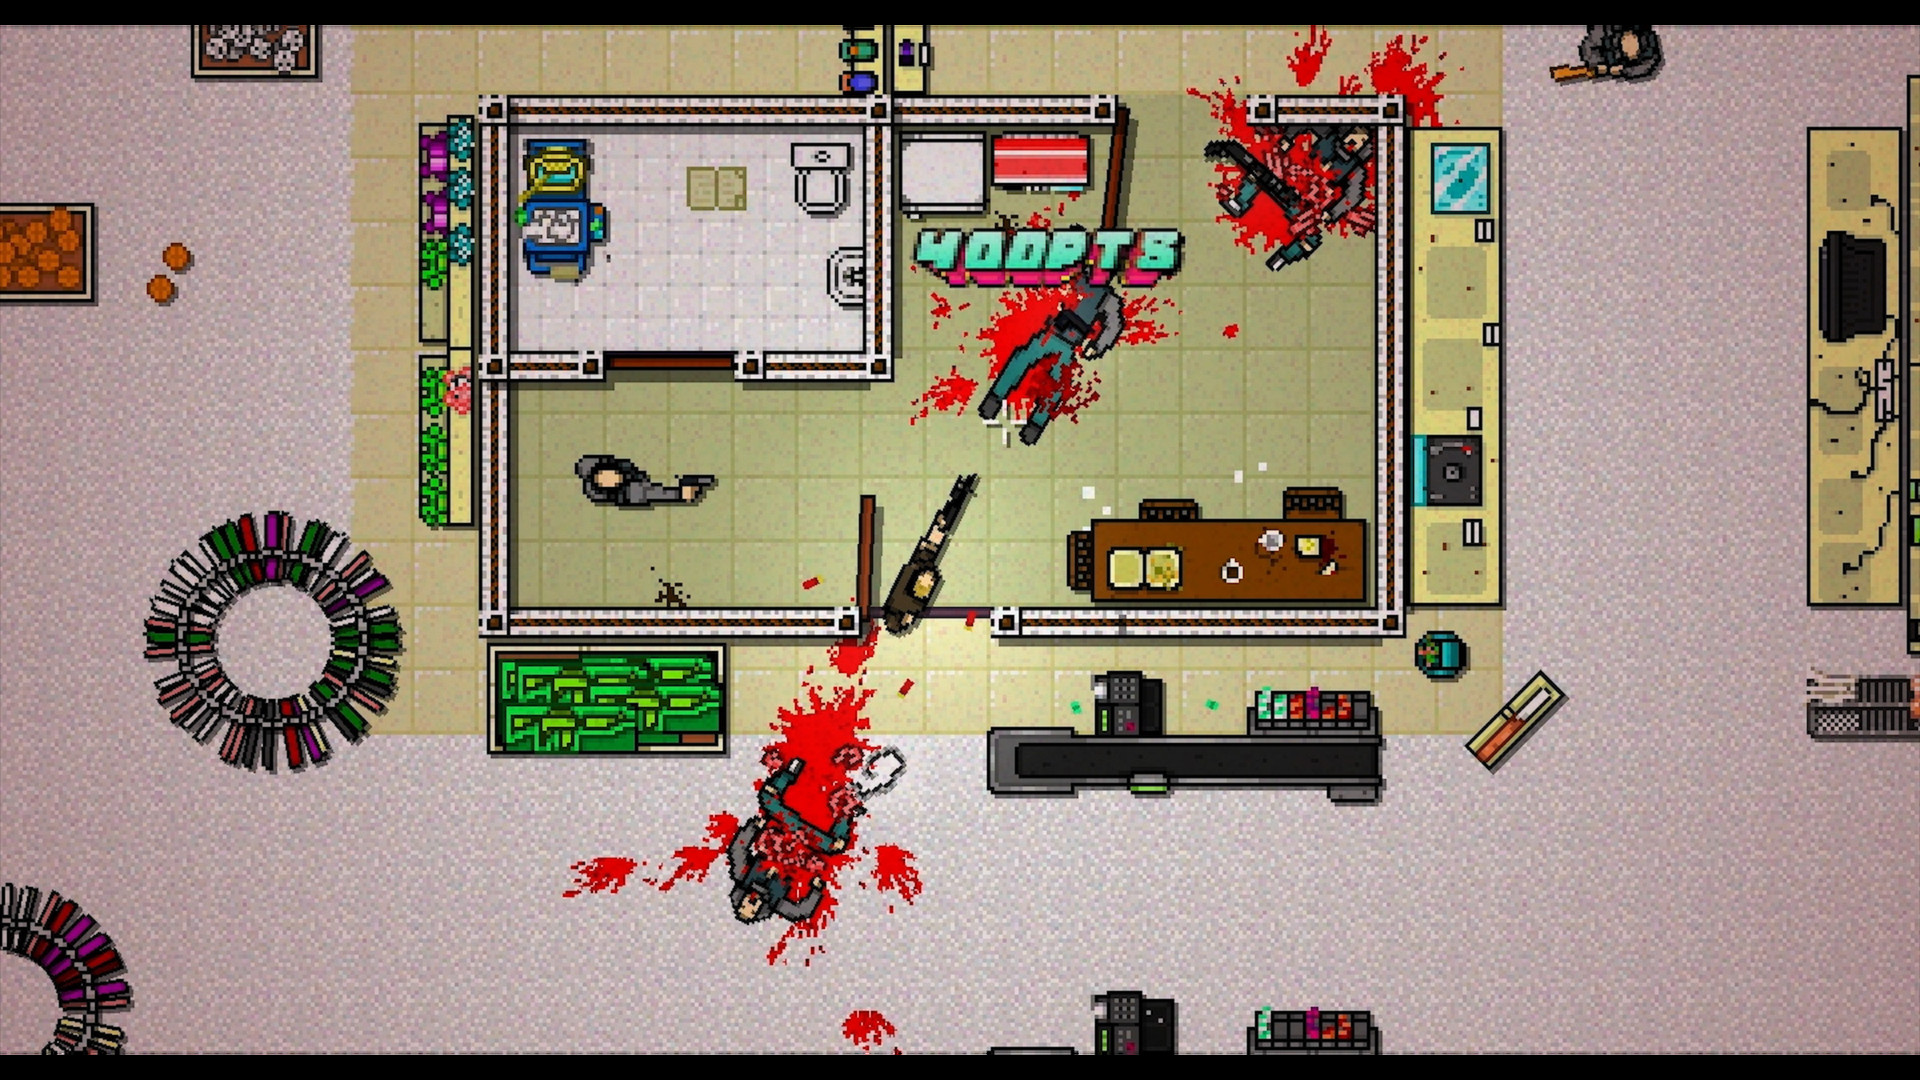 Hotline Miami 2 - картинки